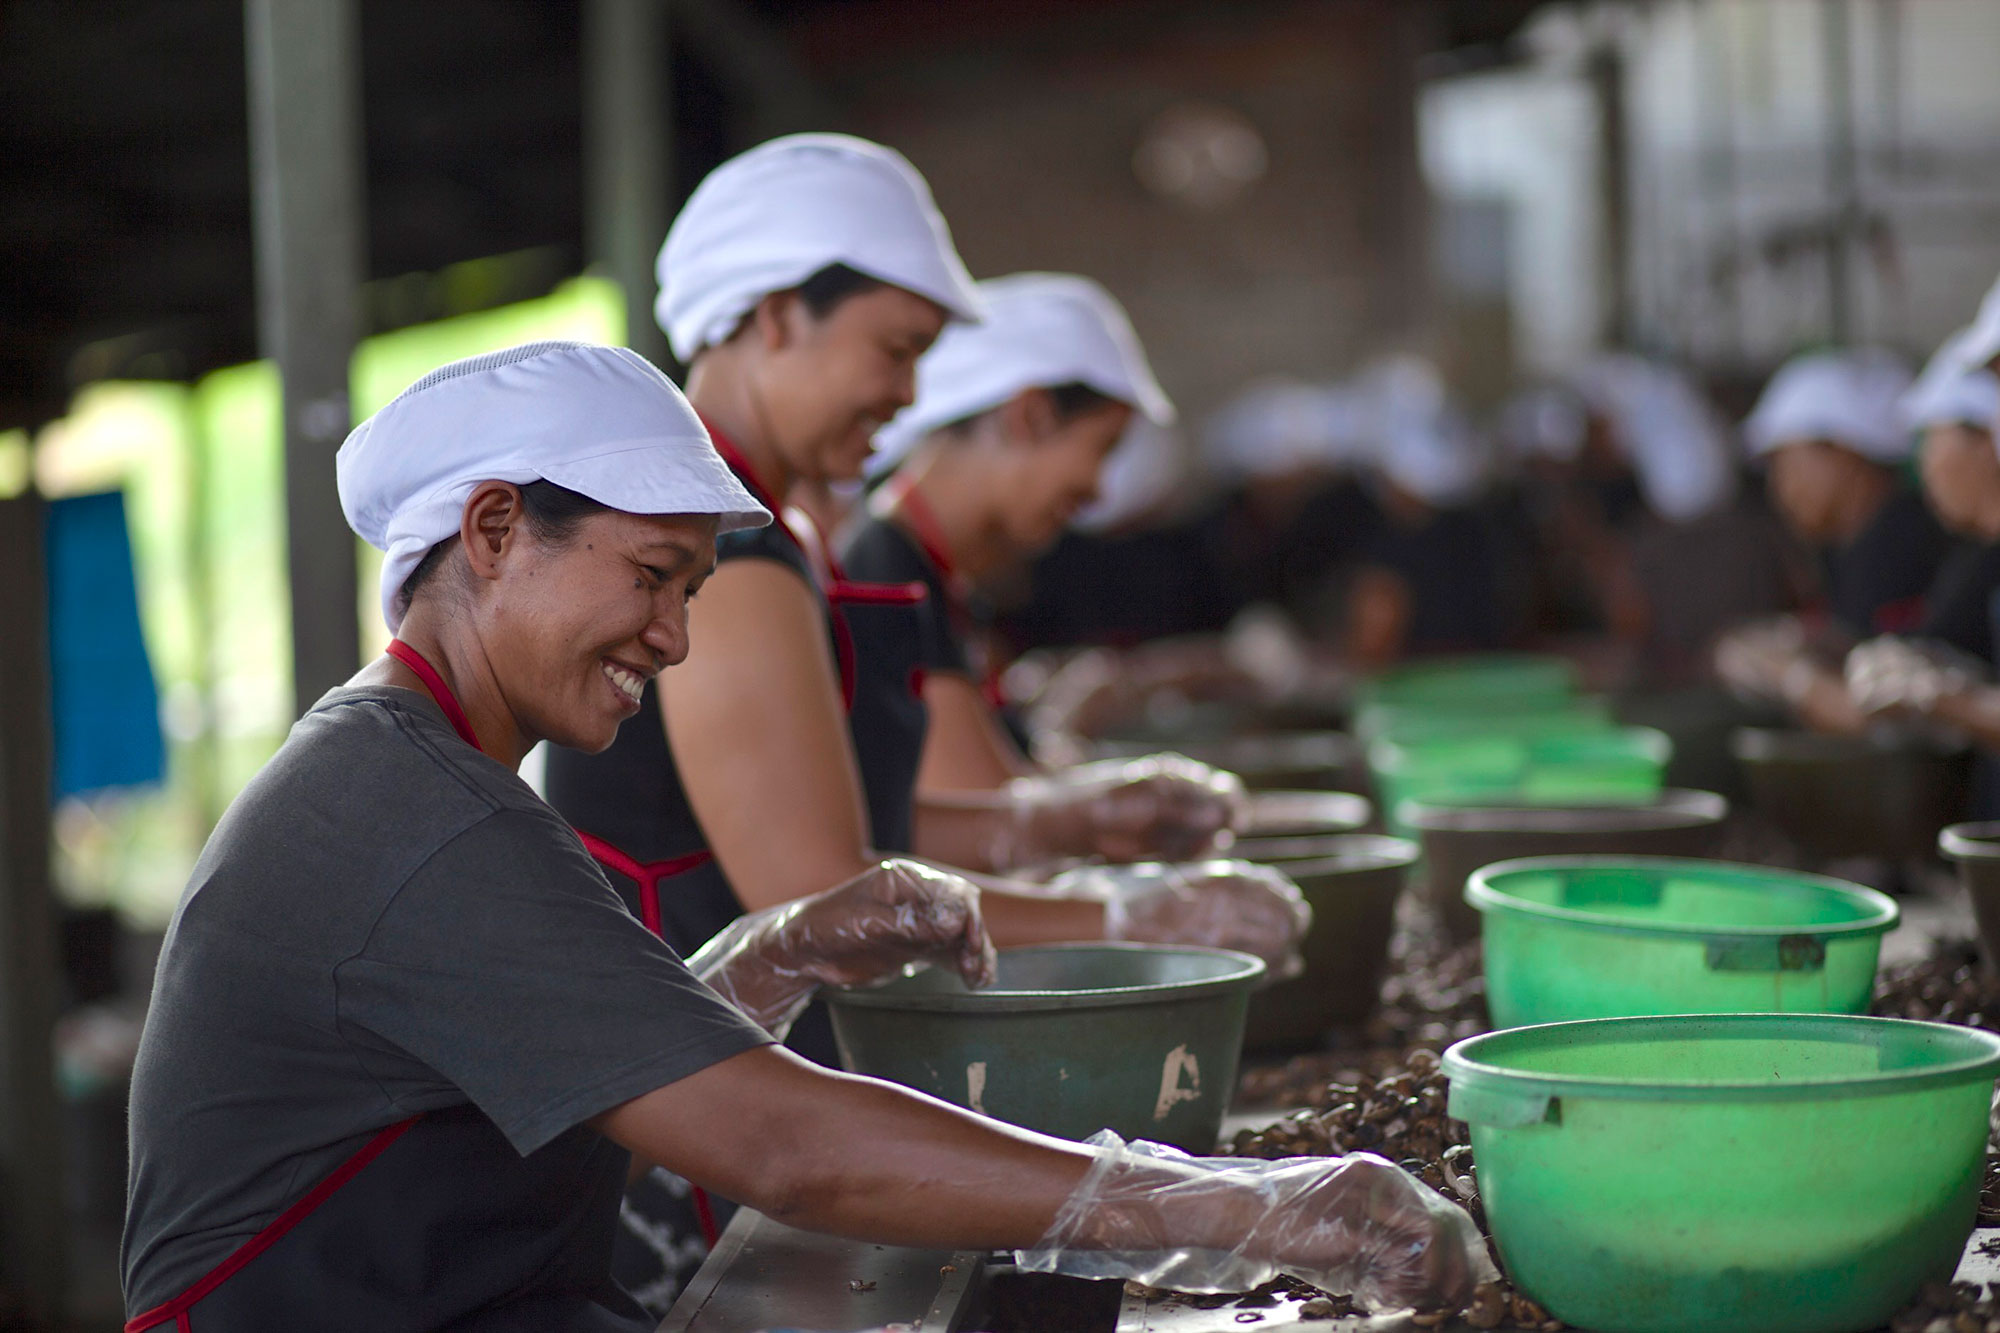 Ninety-five percent of the employees at East Bali Cashew are women.